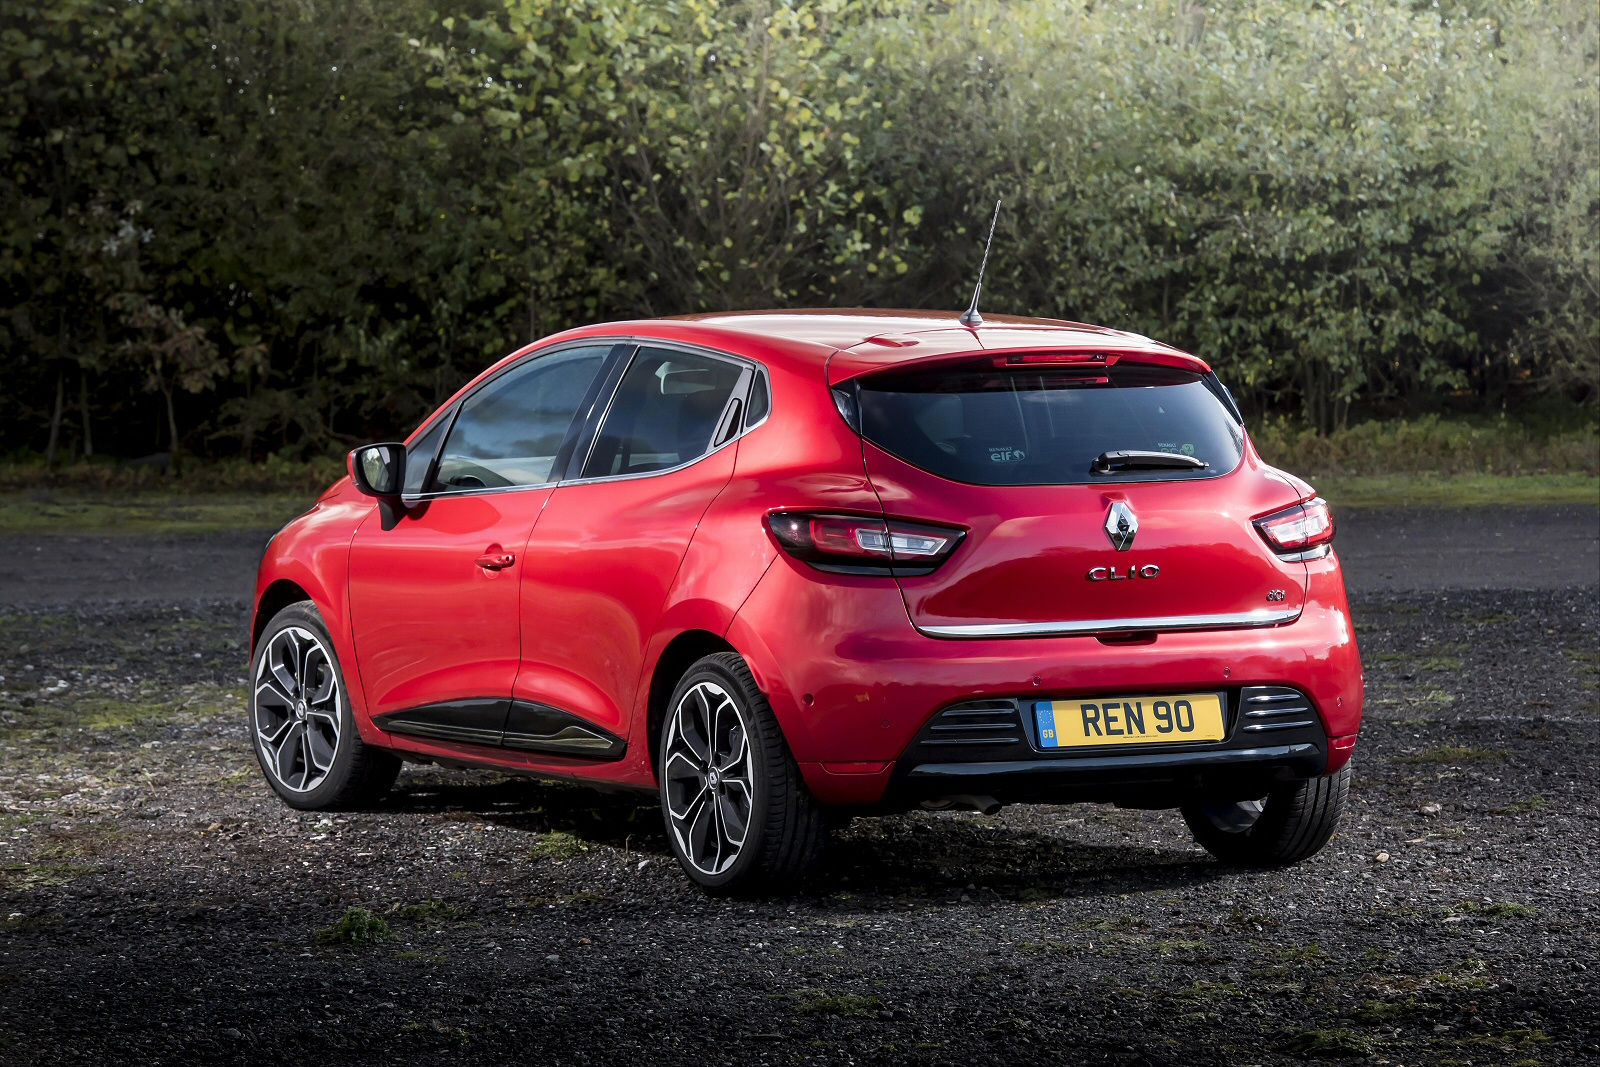 new renault clio 1 5 dci 110 dynamique s nav 5dr diesel hatchback for sale bristol street. Black Bedroom Furniture Sets. Home Design Ideas